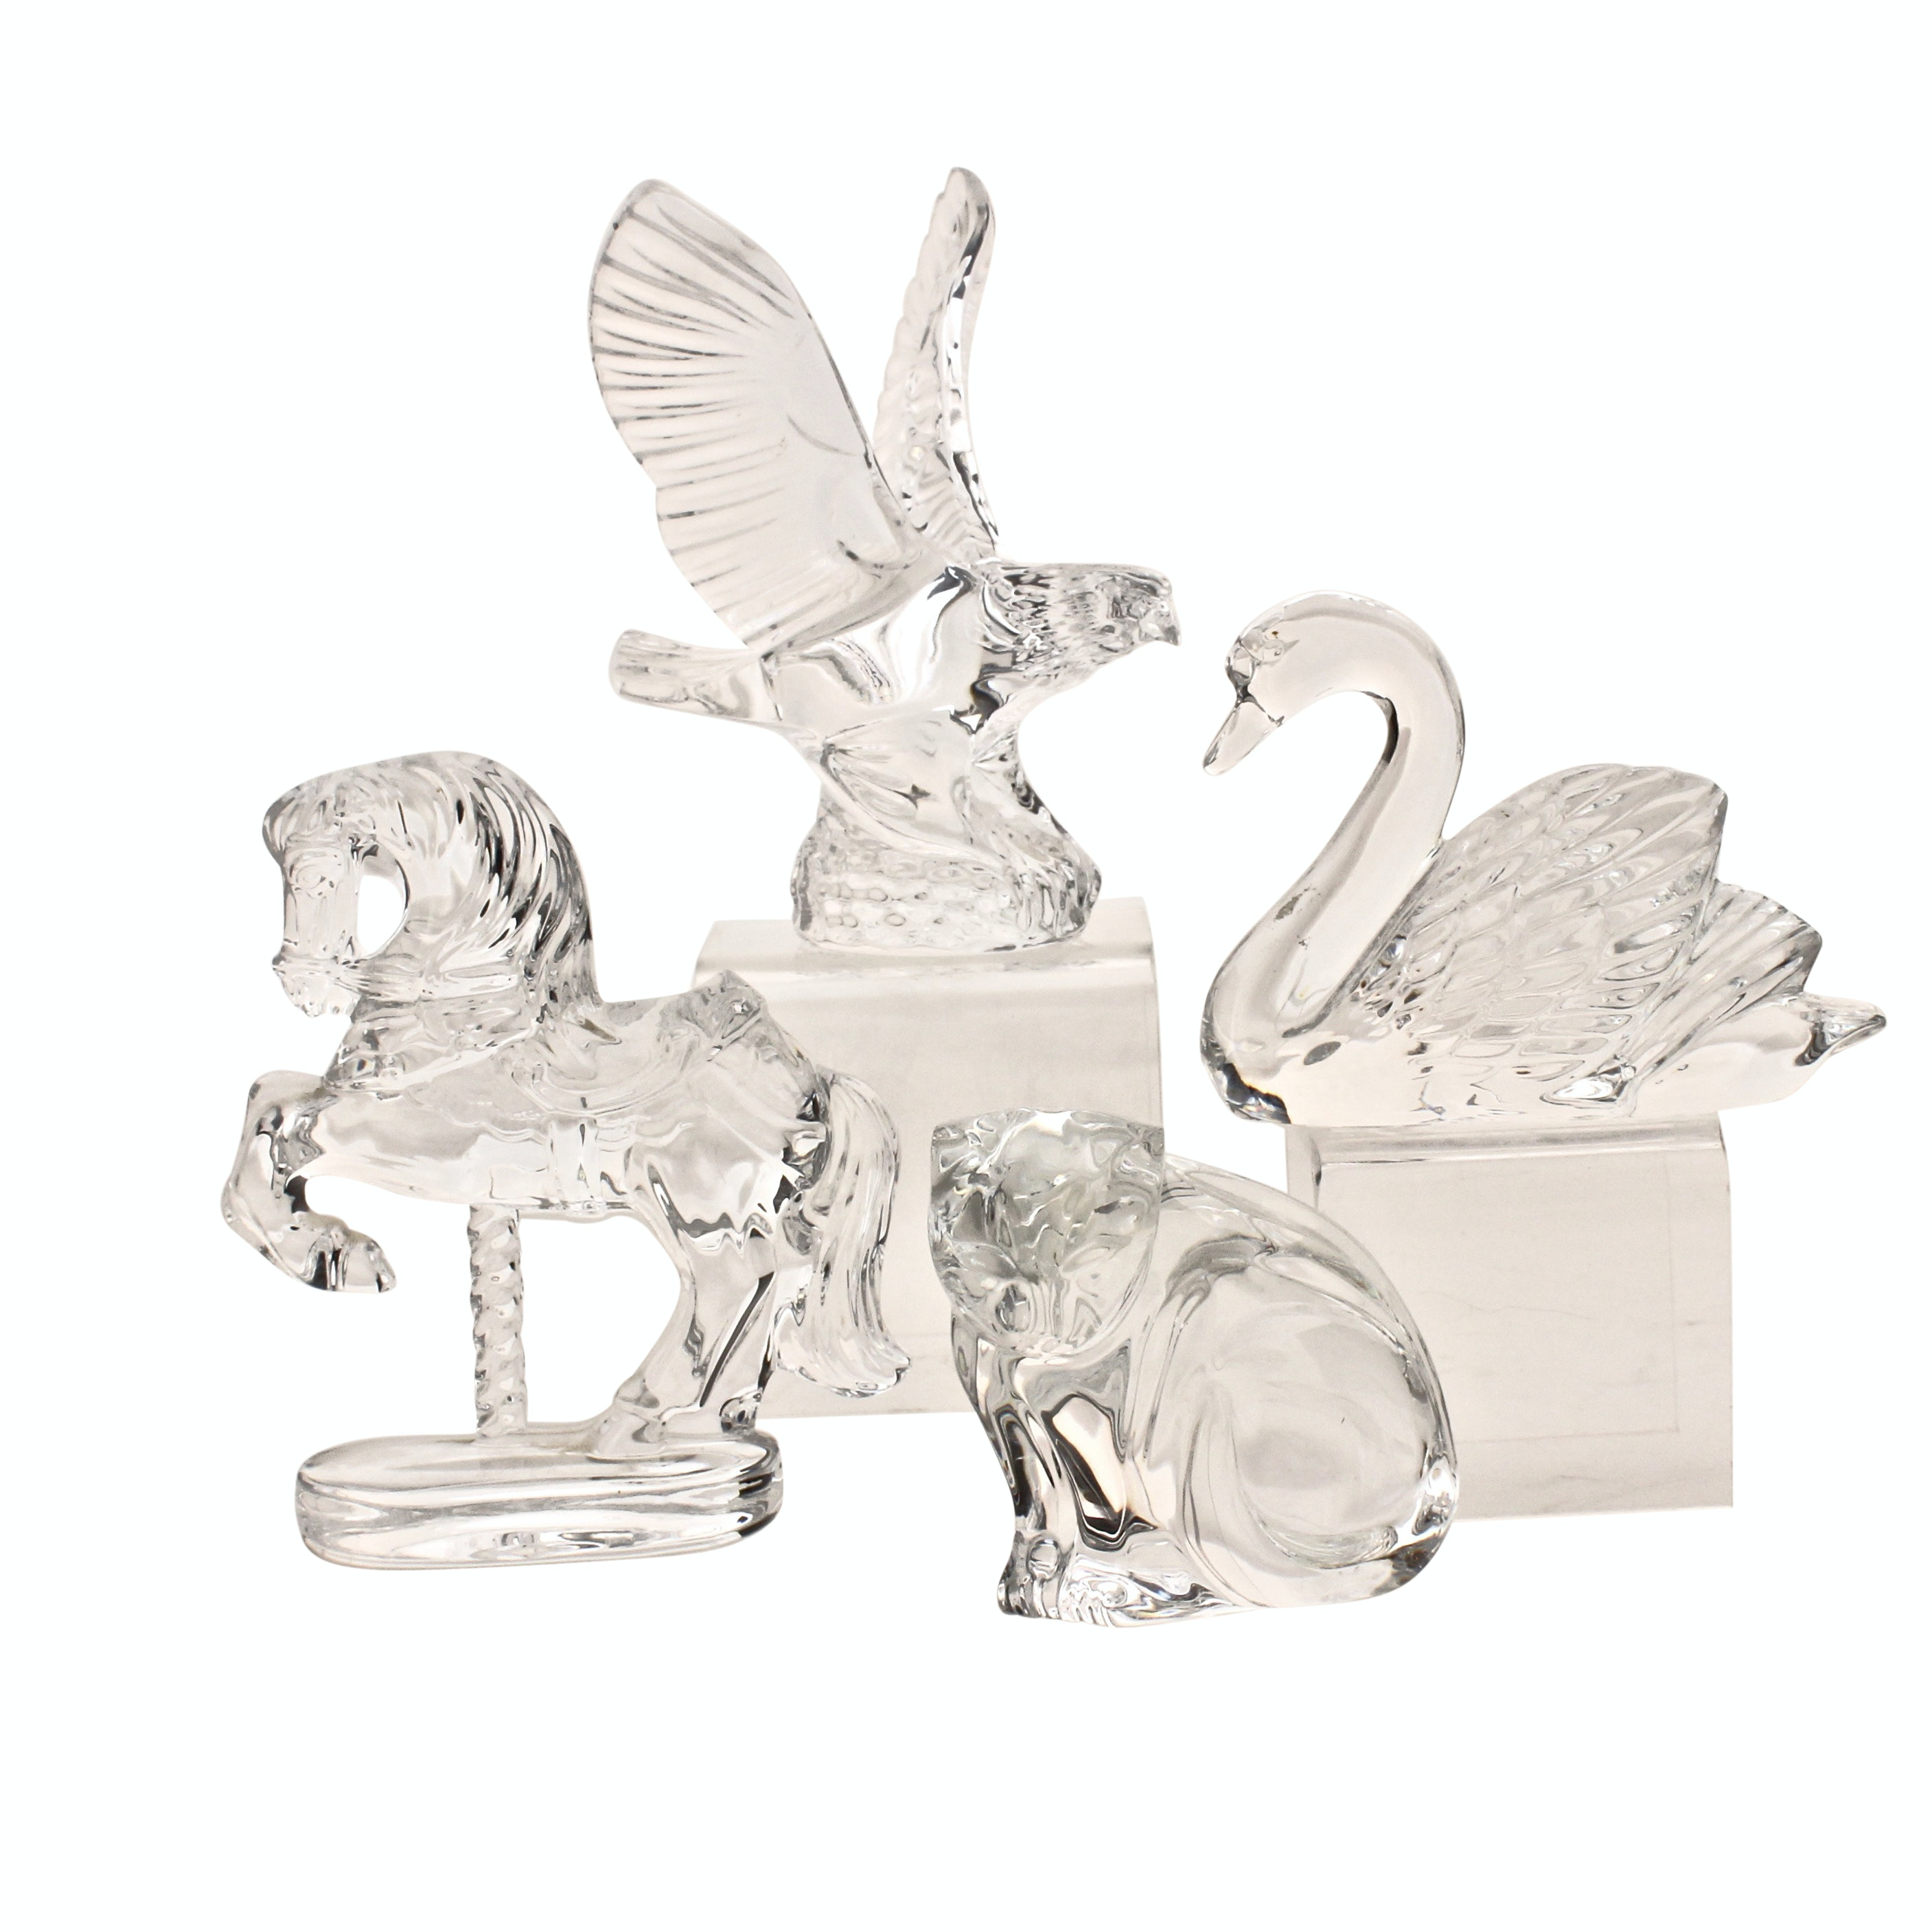 Waterford Crystal Animal Figurines